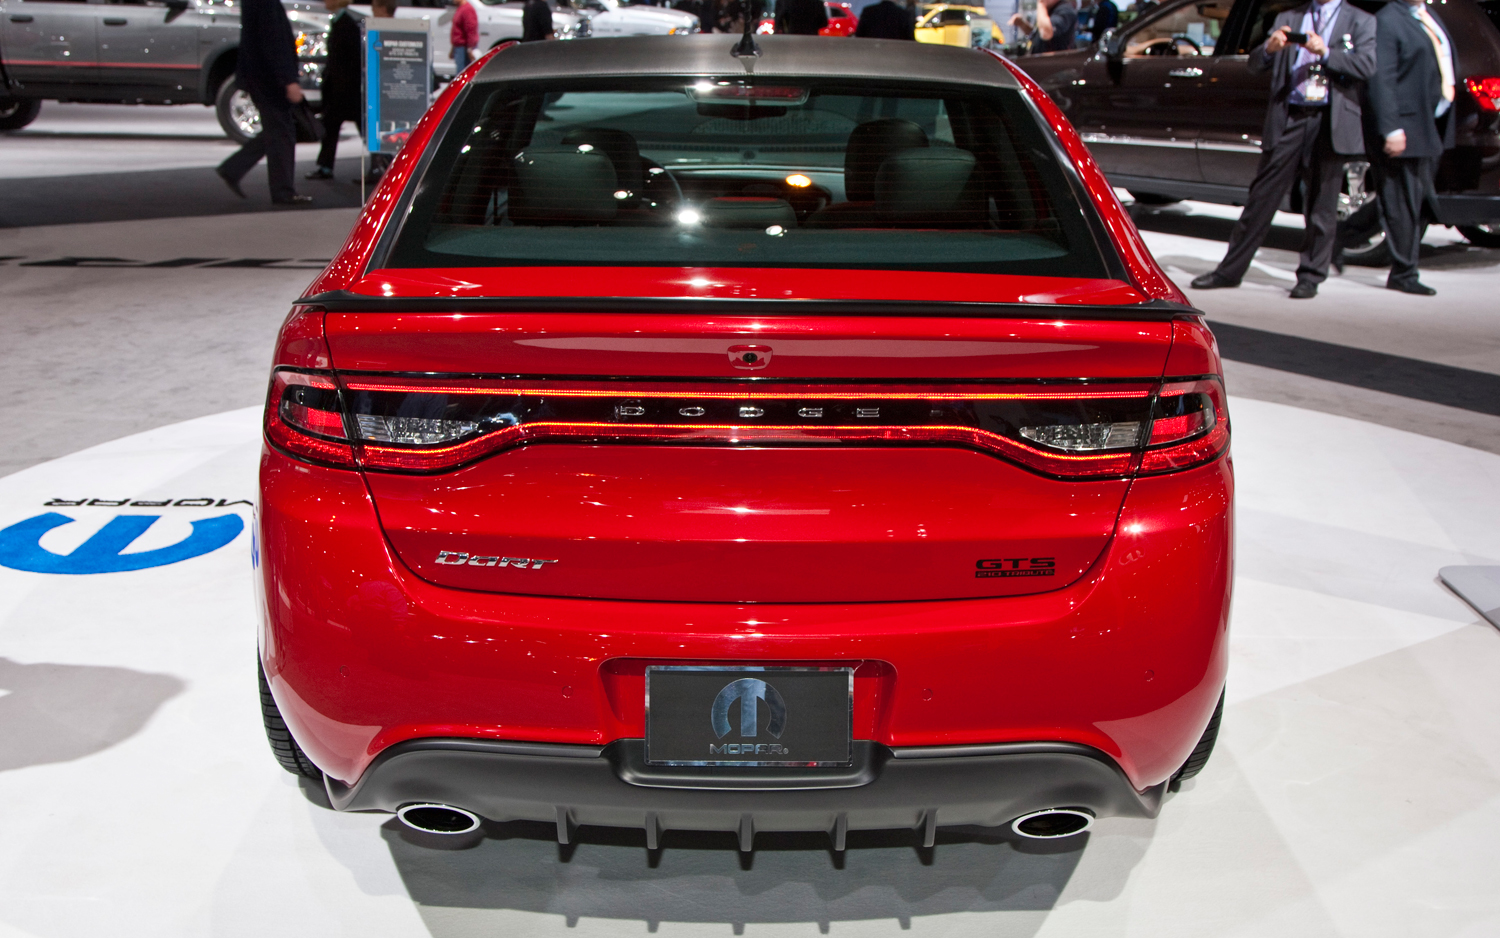 2013 Dodge Dart GTS 210 Tribute Rear View